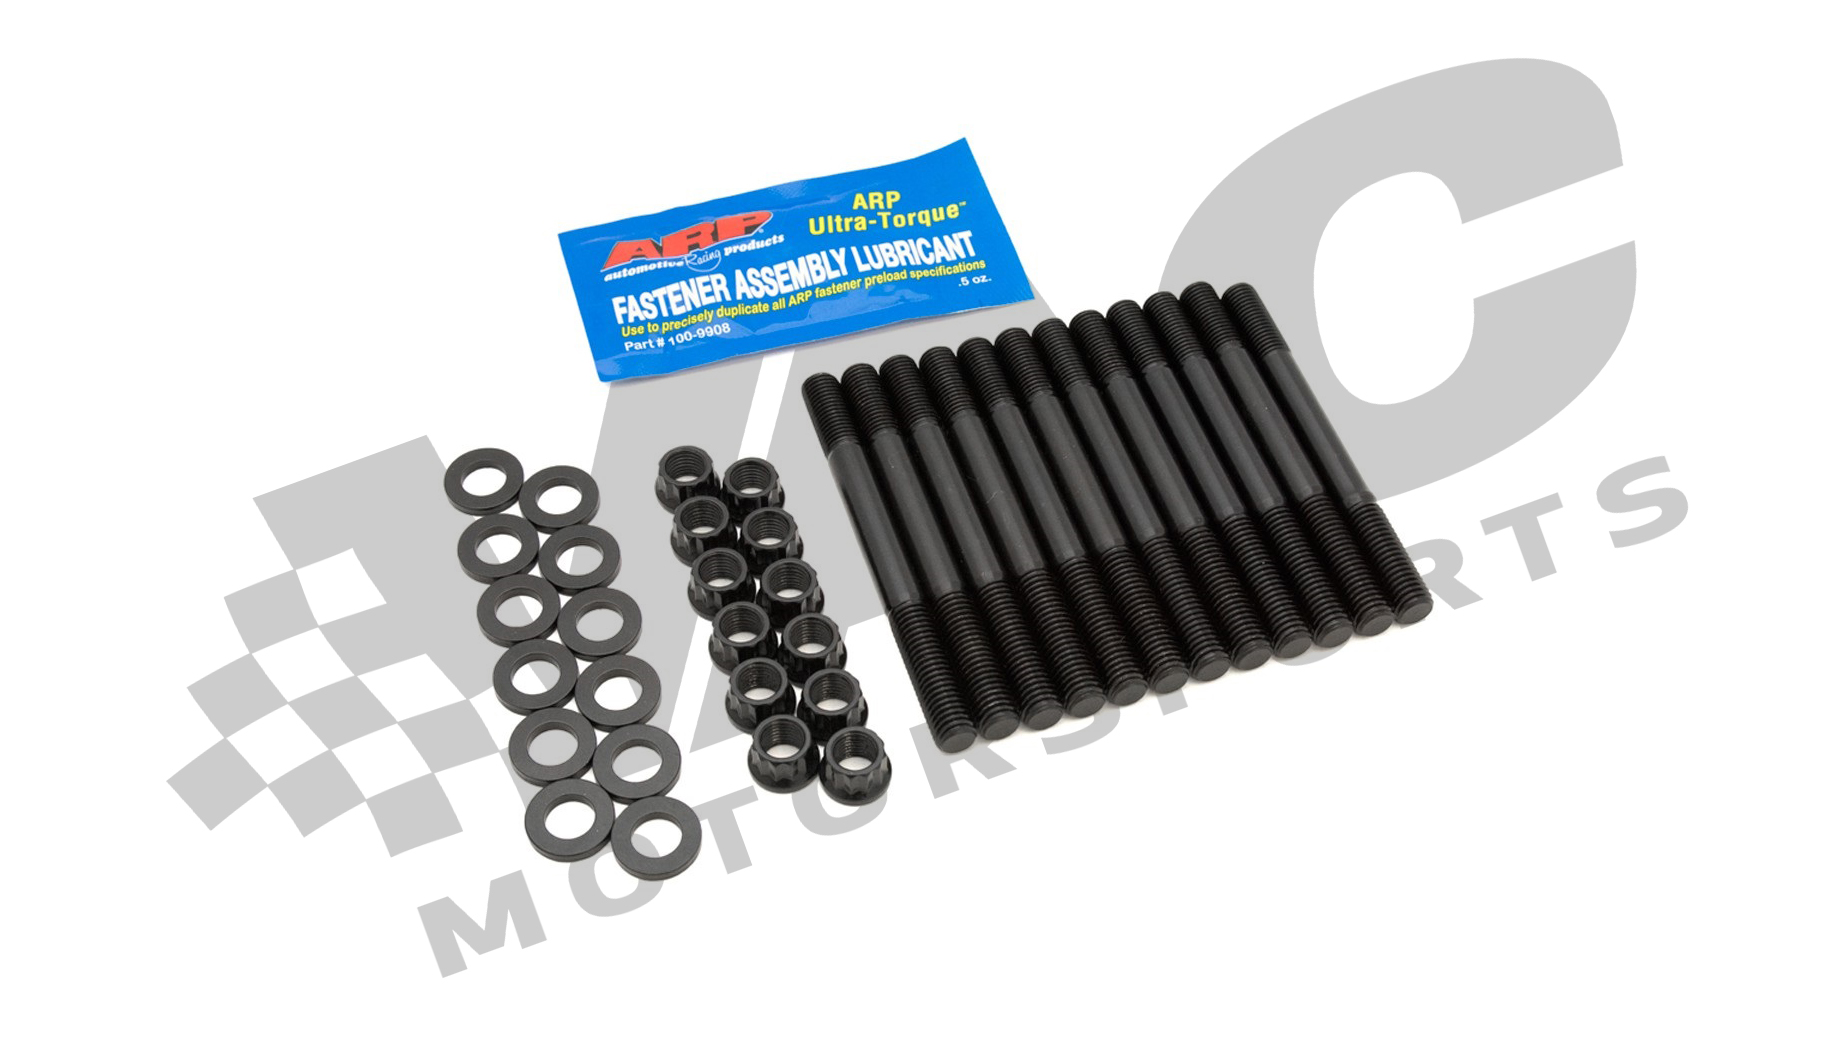 ARP Main Stud Kits for BMW MAIN